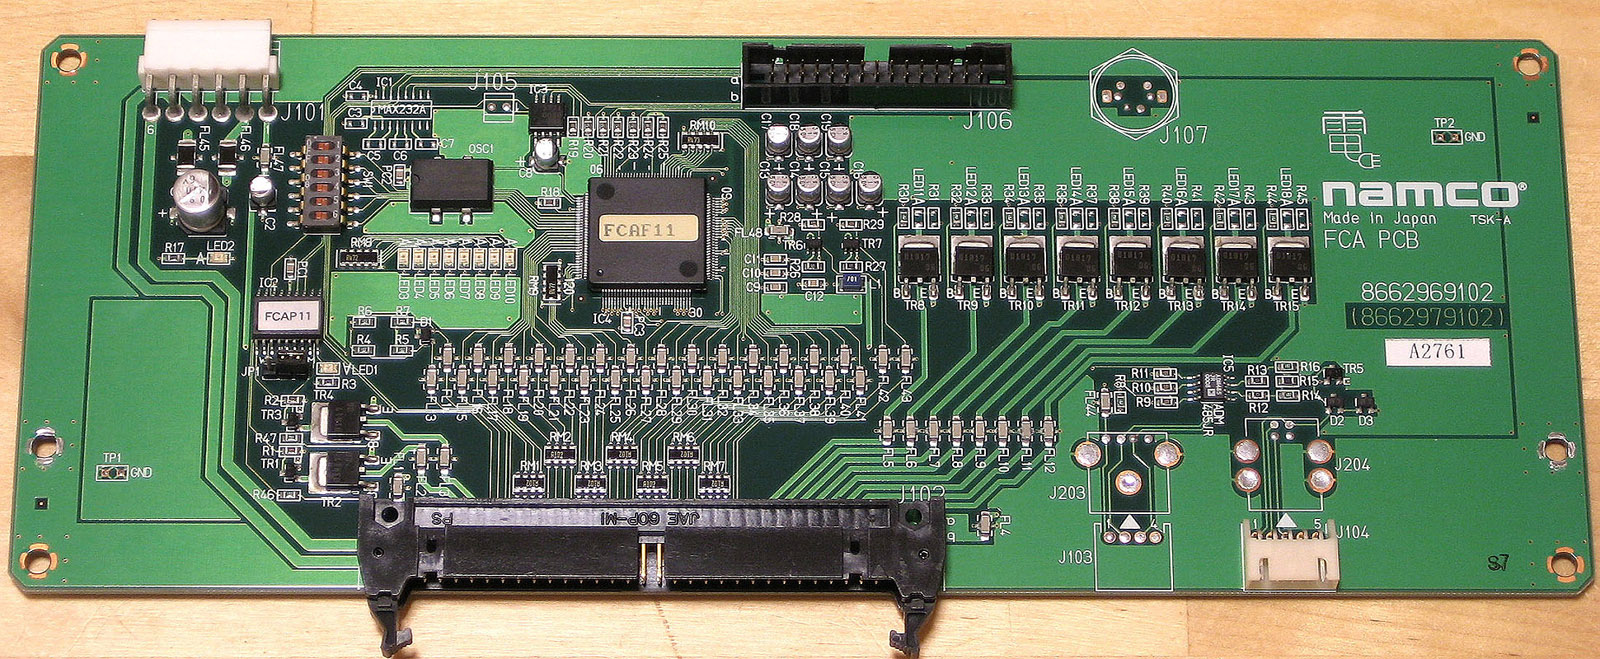 FCA_PCB namco system 246 256 arcade otaku wiki Theatre Diagram at aneh.co